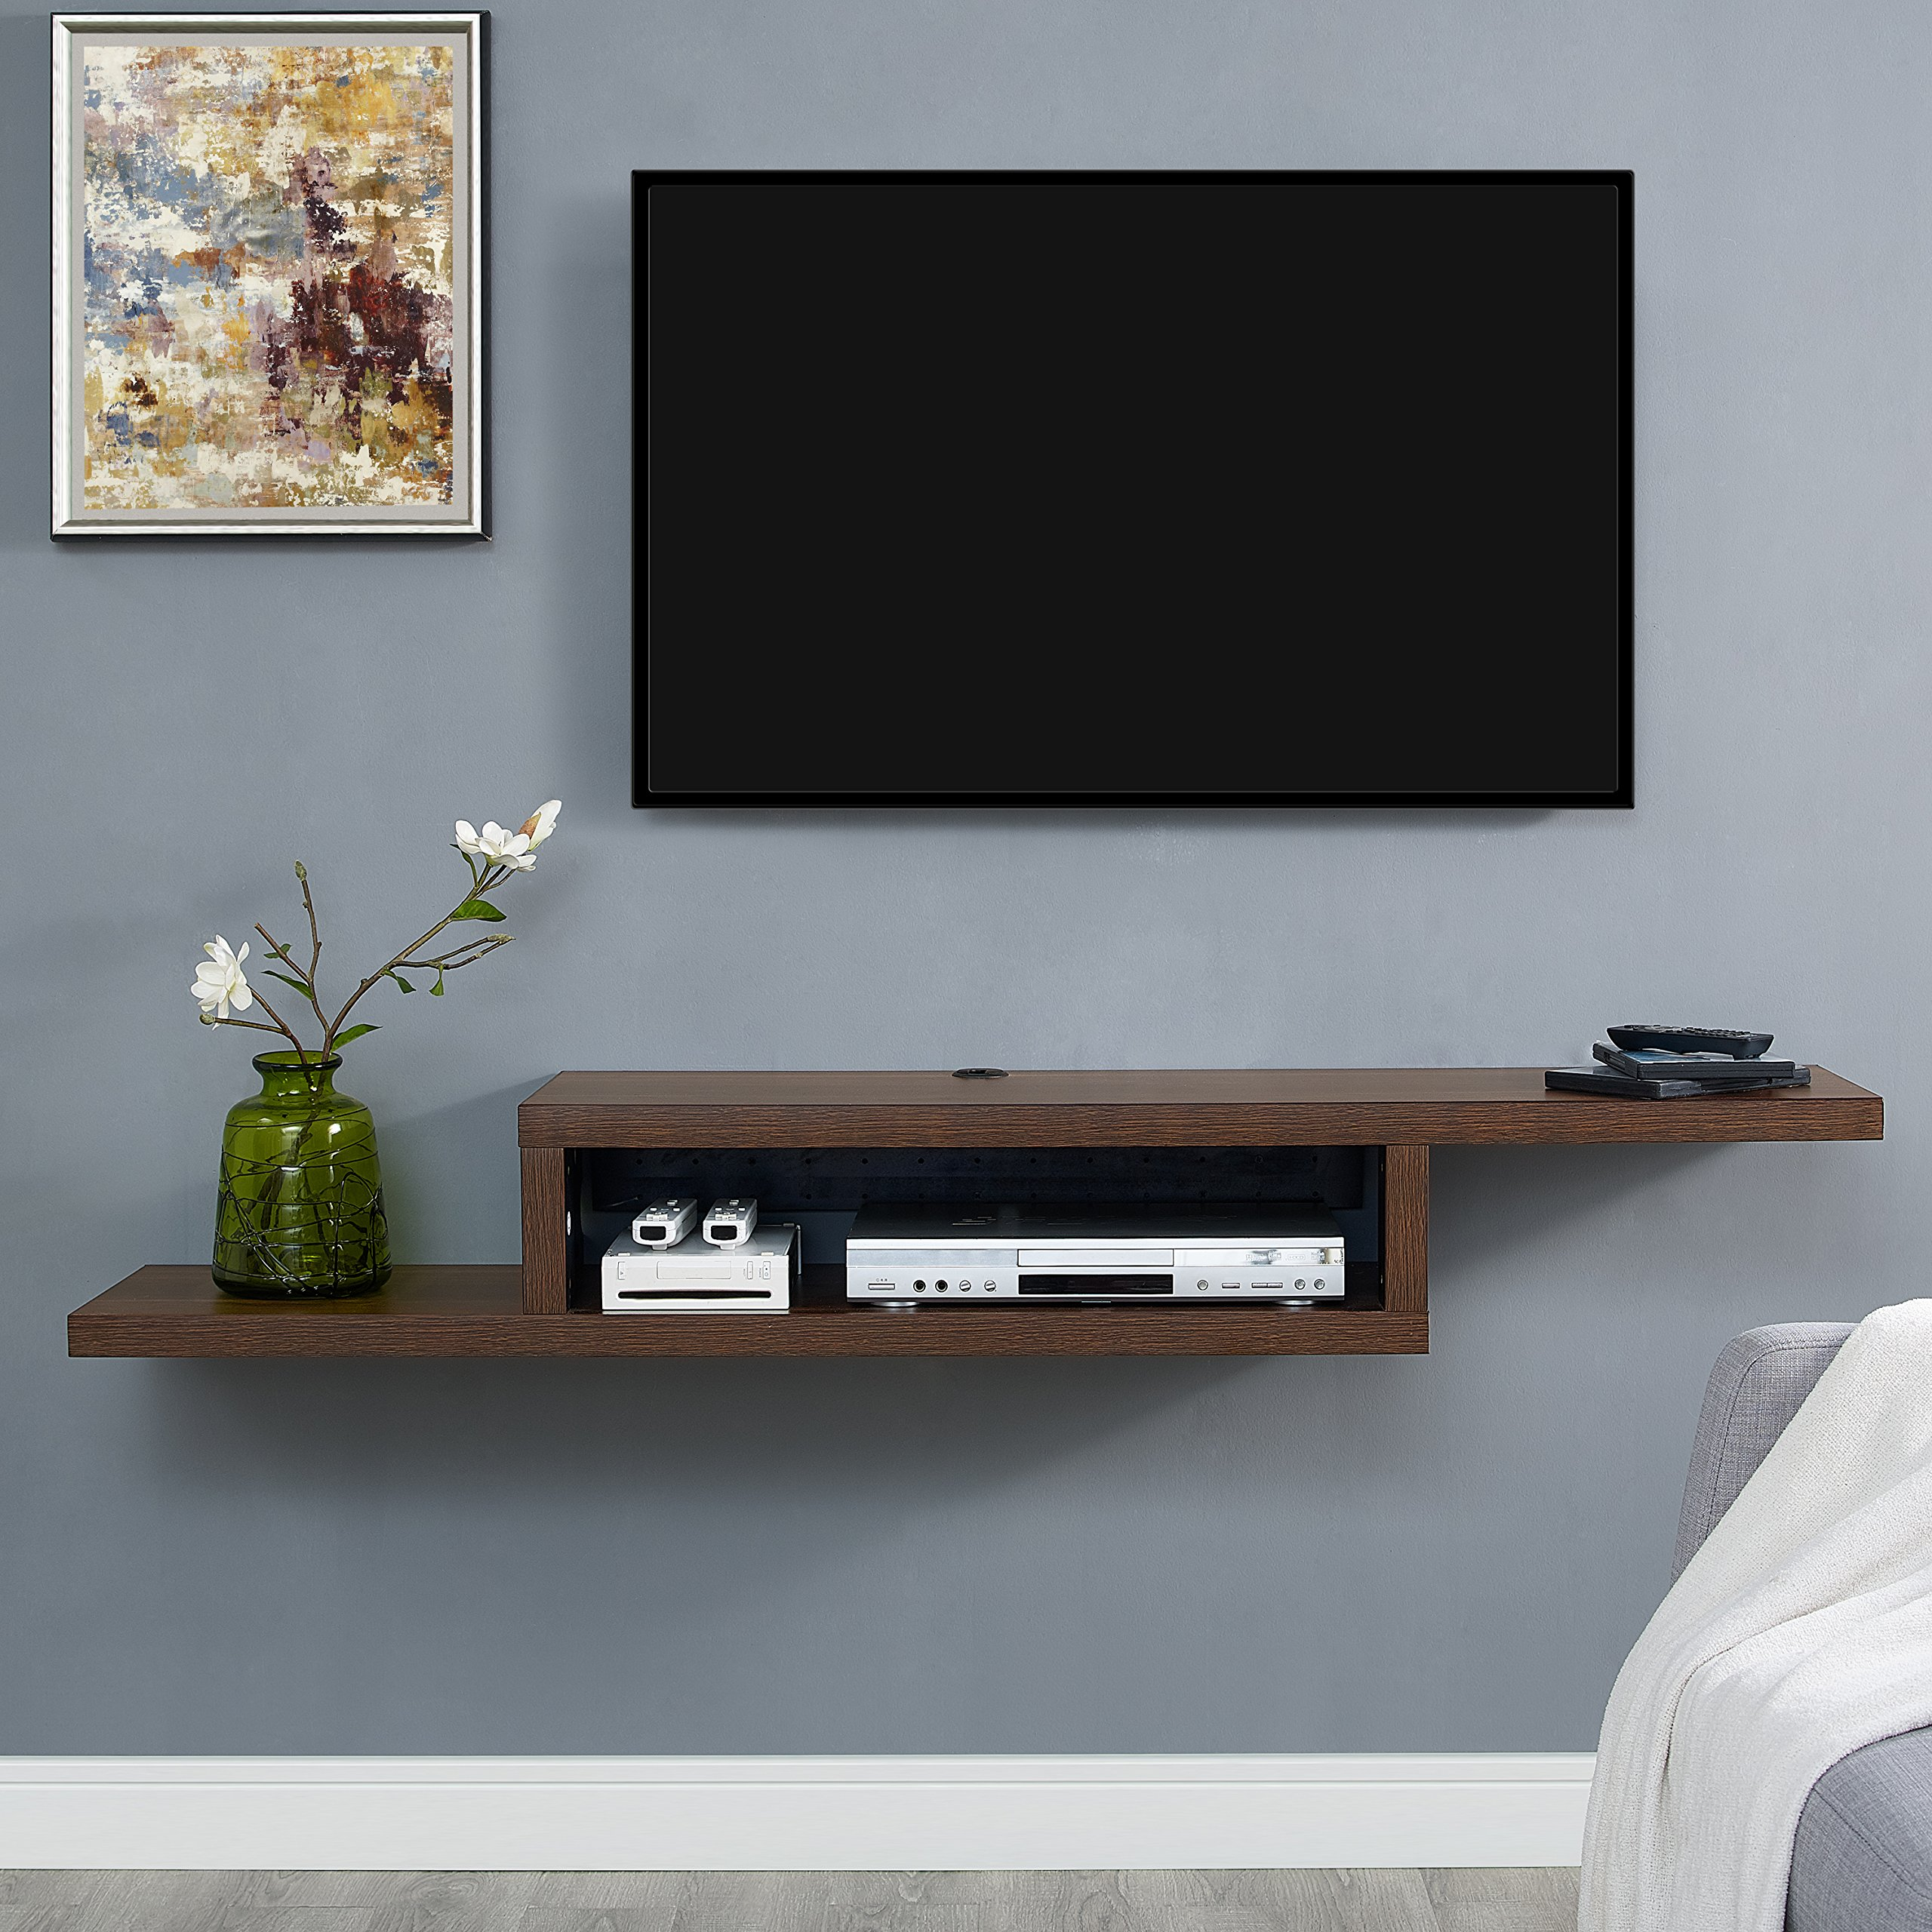 Martin Furniture Asymmetrical Floating Wall Mounted TV Console, 60inch, Columbian Walnut - by Martin Furniture